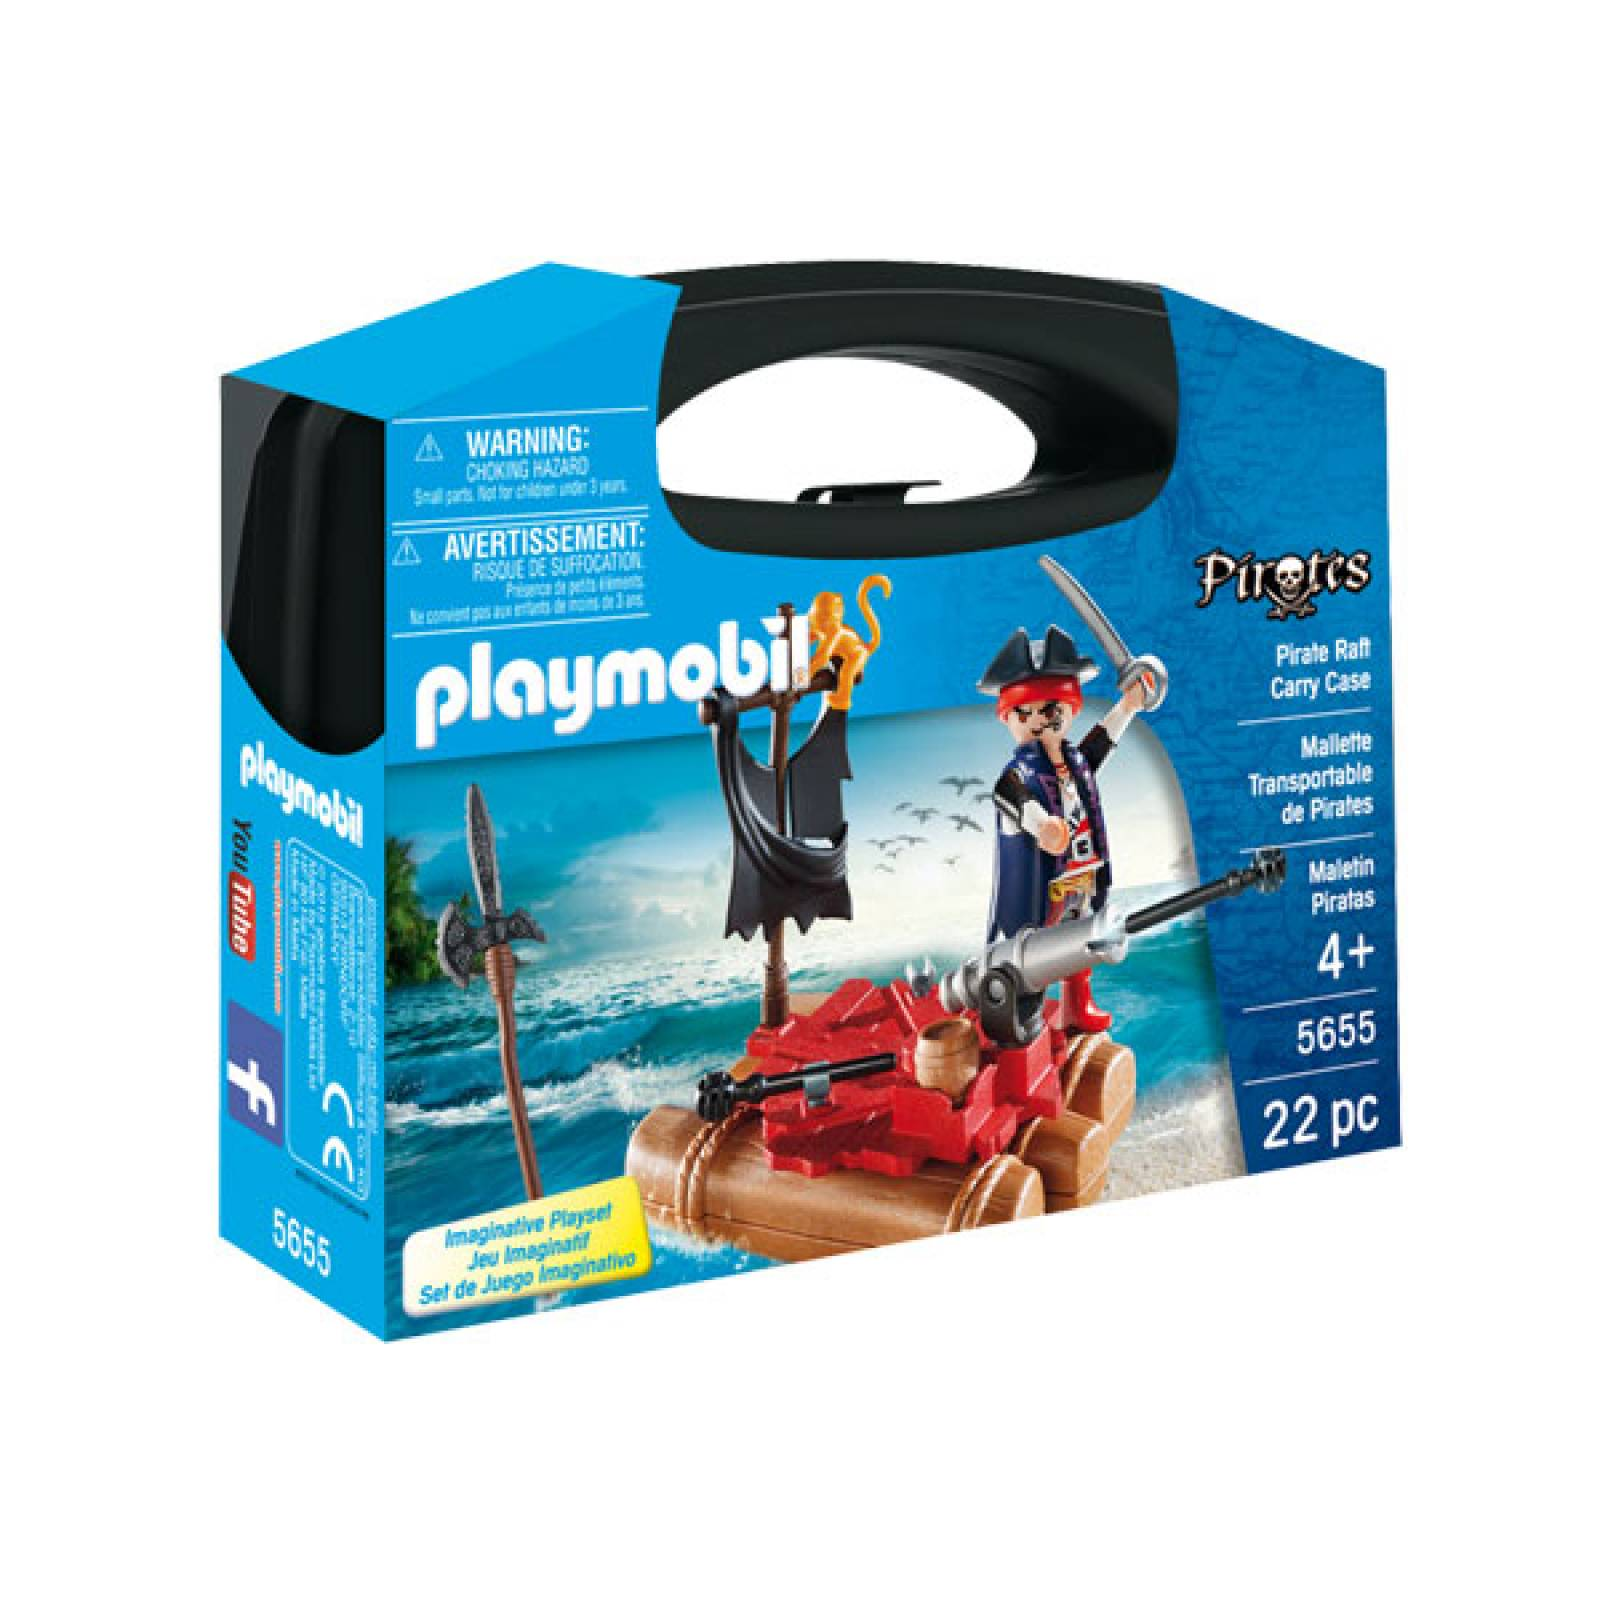 Pirates Small Carrying Case Playmobil 5655 thumbnails